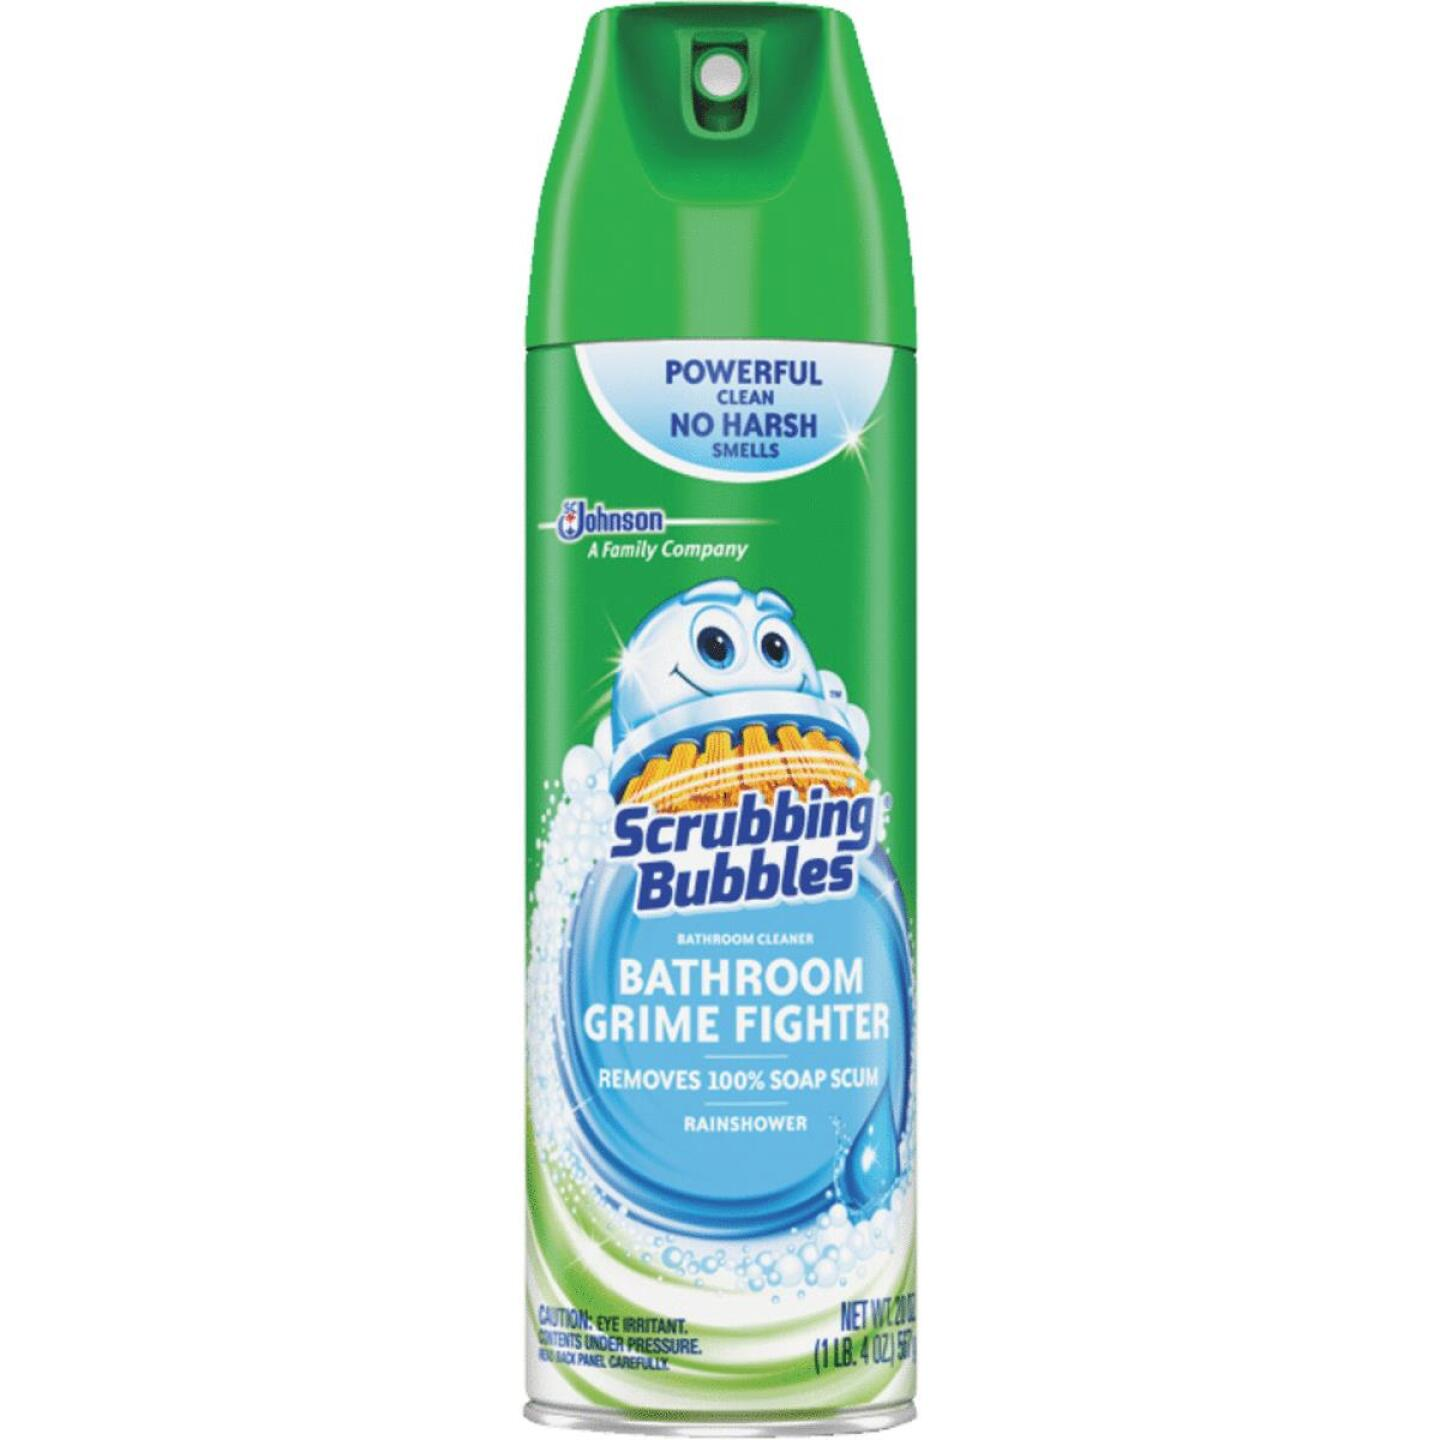 Scrubbing Bubbles 20 Oz. Disinfectant Penetrating Foam Bathroom Cleaner Image 1